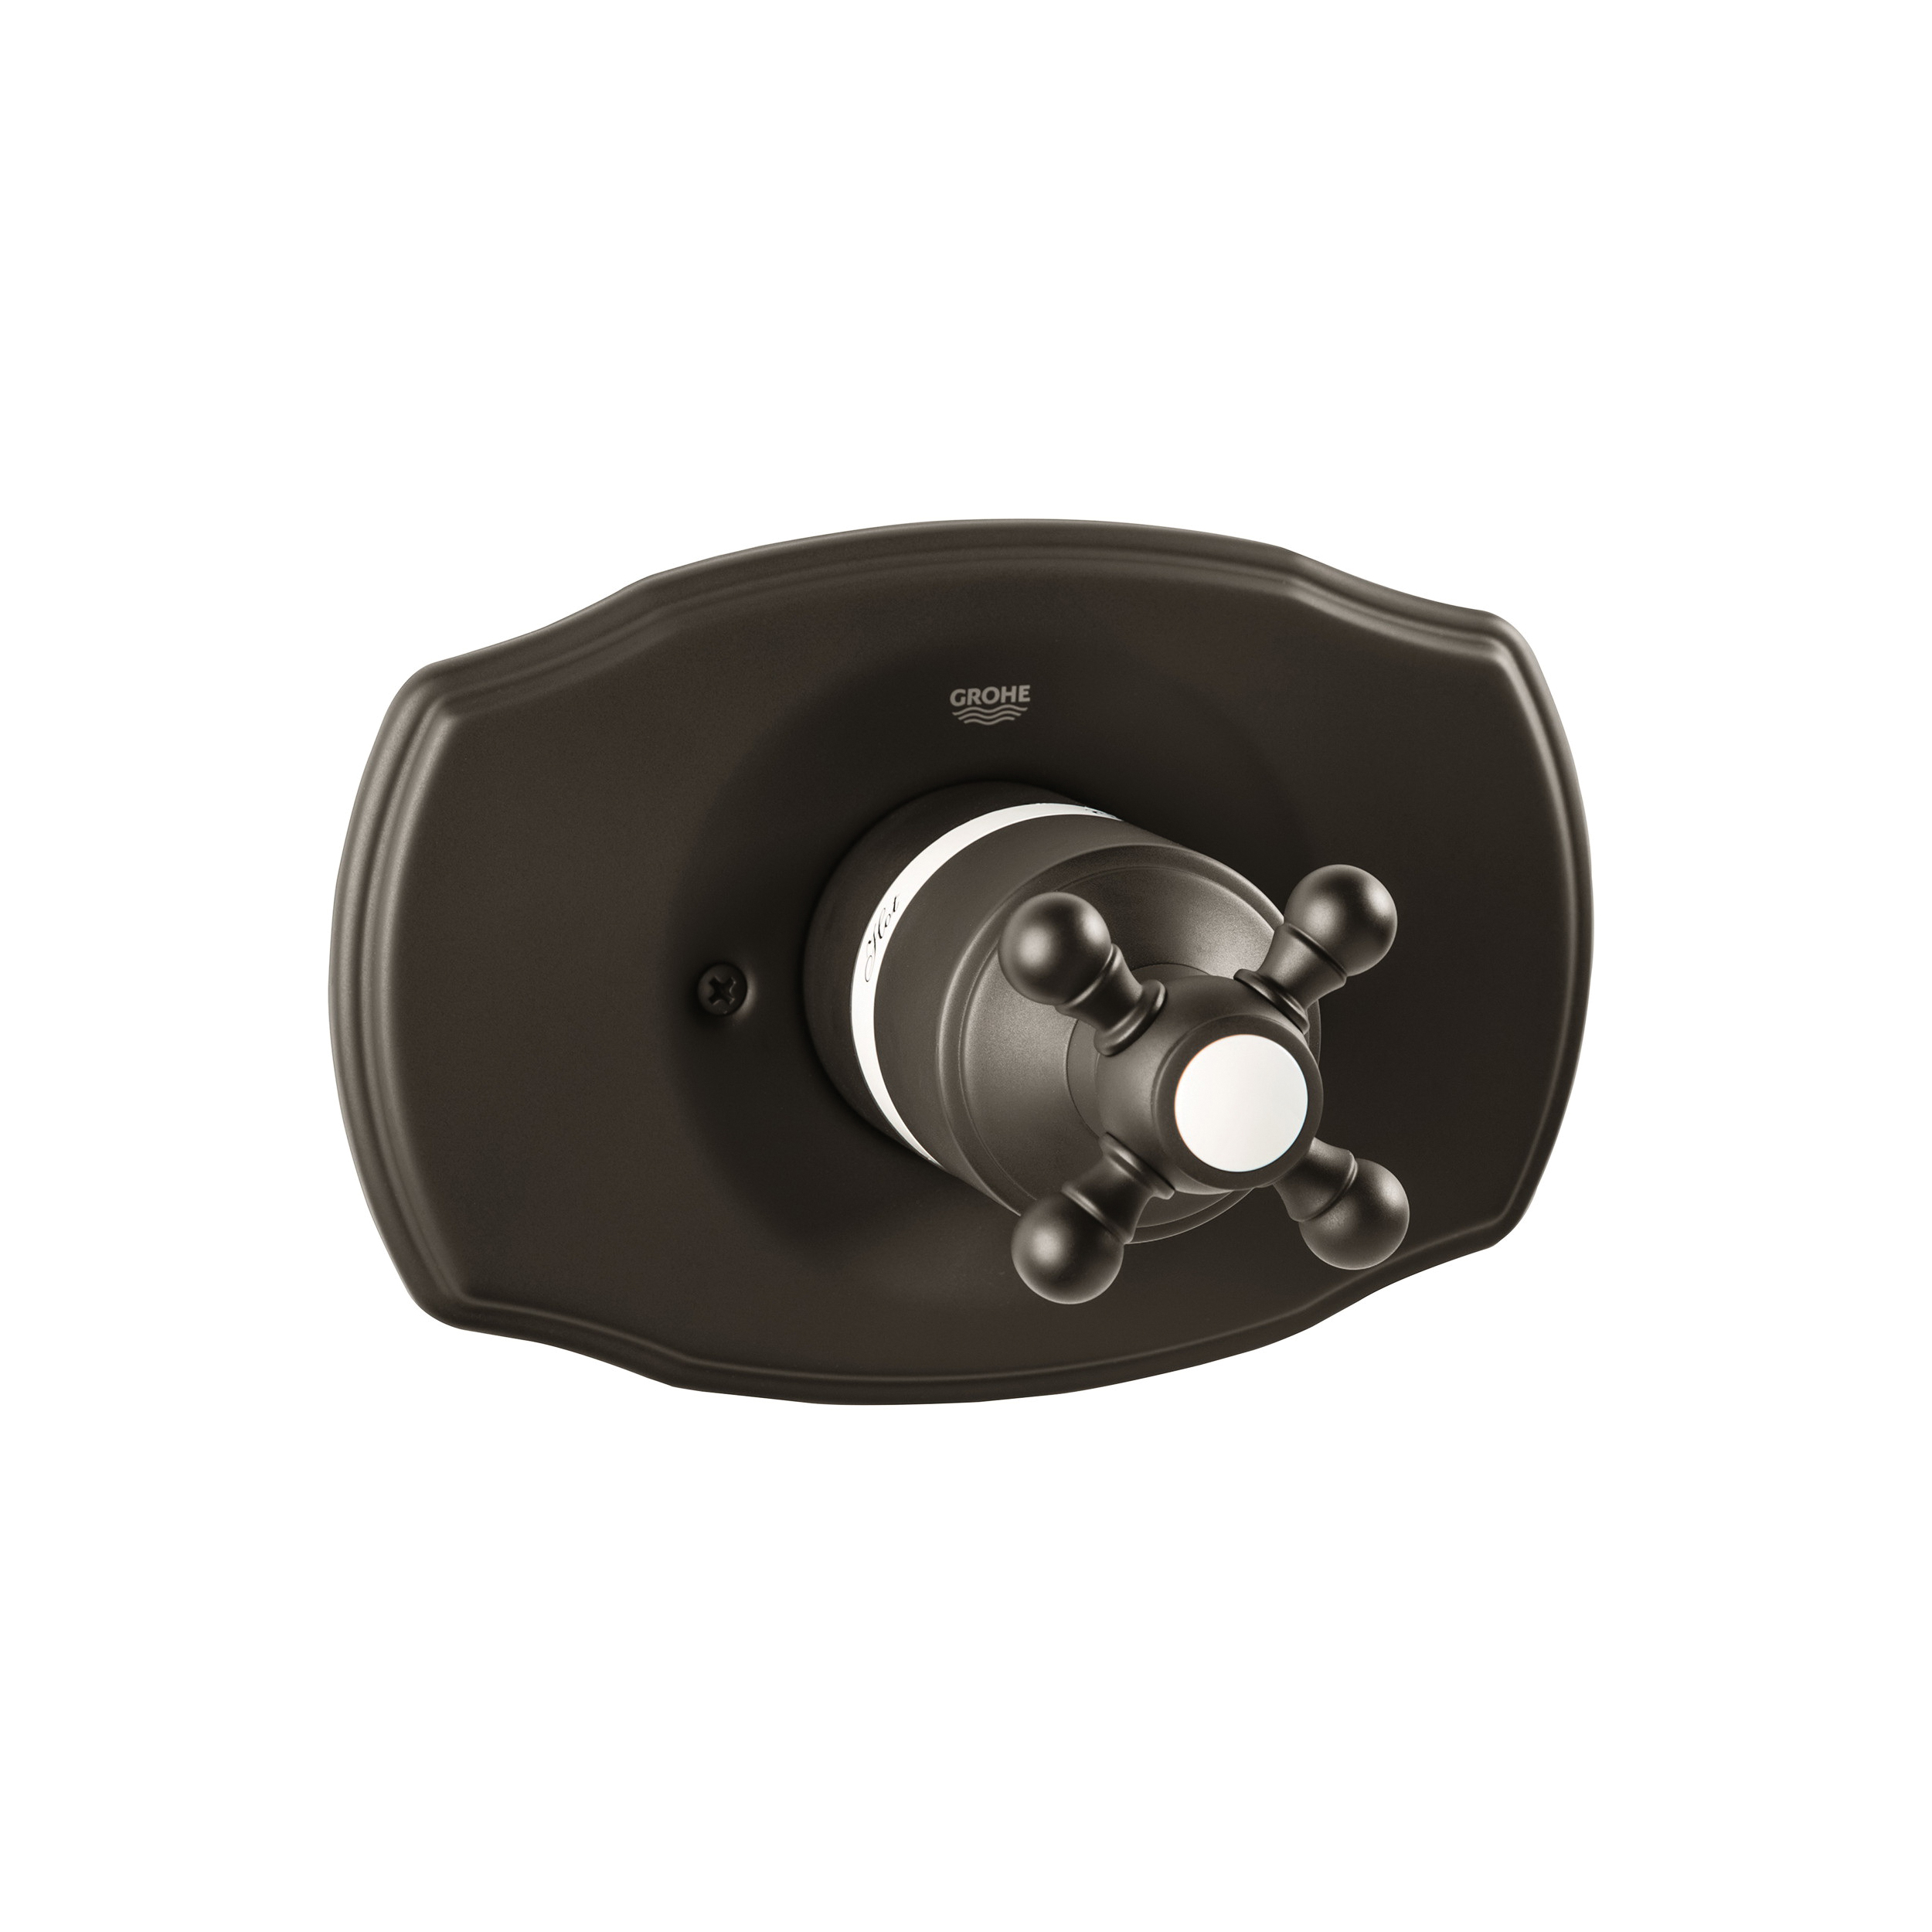 GROHE 19725ZB0 Geneva™ Valve Trim Kit, Oil Rubbed Bronze